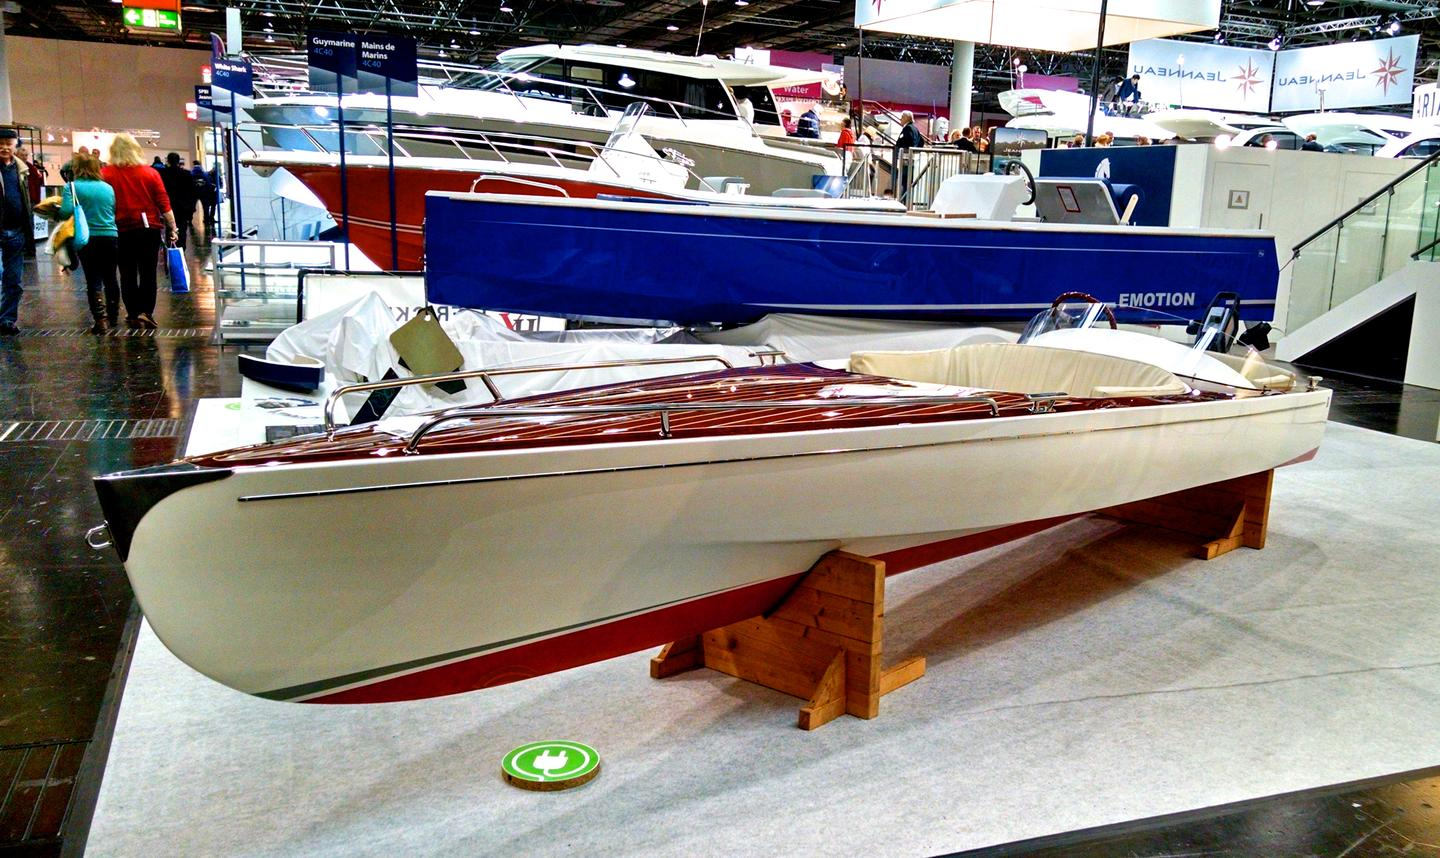 The HD 550 Camus is an electric boat with classic looks from Germany's Fricke & Dannhus (Photo: C.C. Weiss/Gizmag)